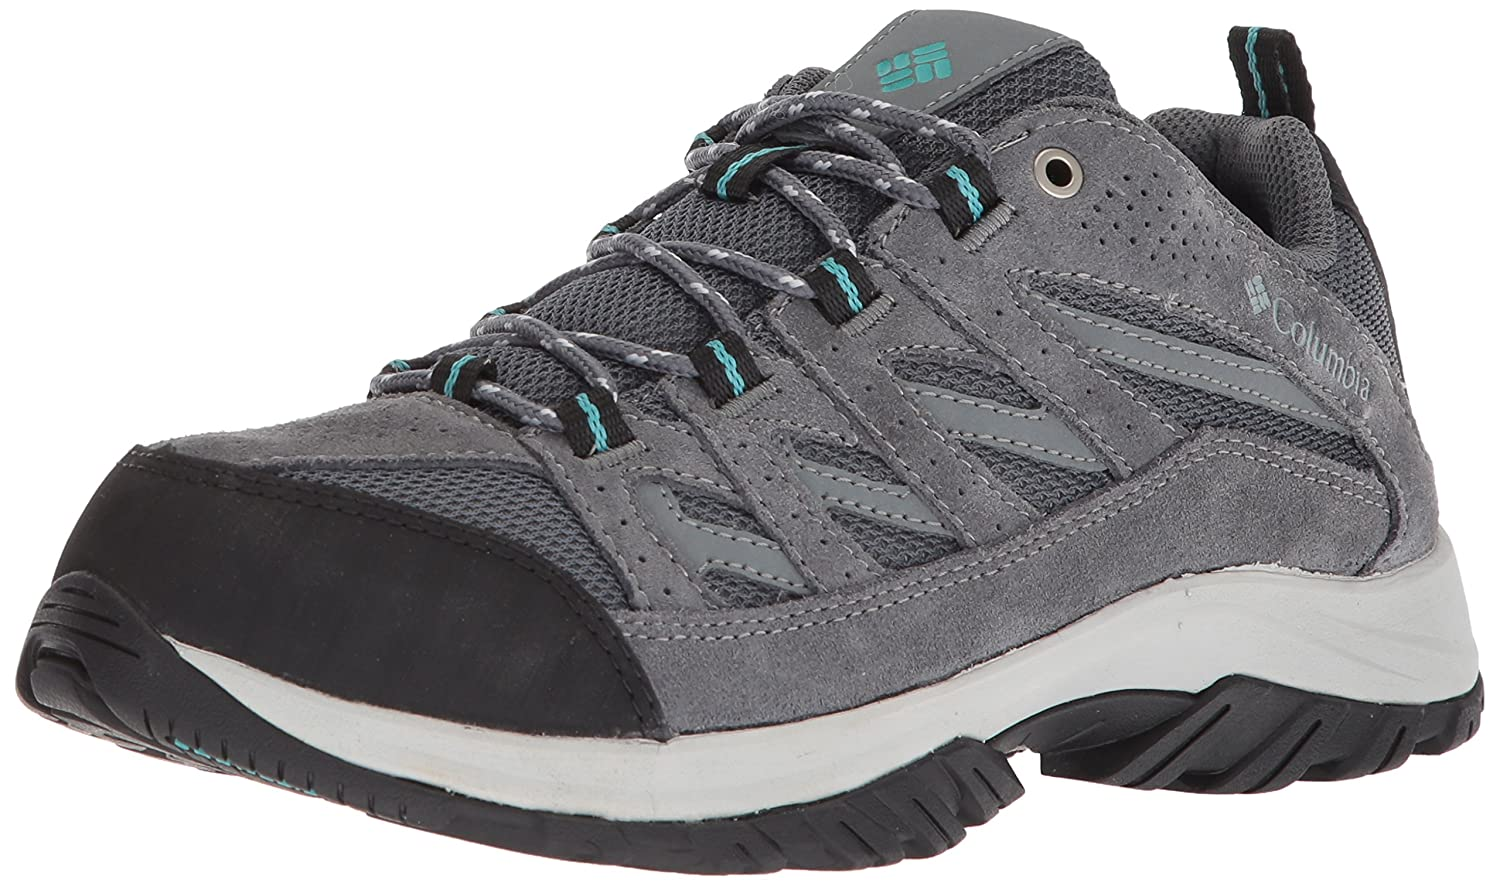 Columbia Women's Crestwood Hiking Shoe B01N4O1207 6 B(M) US|Graphite, Pacific Rim